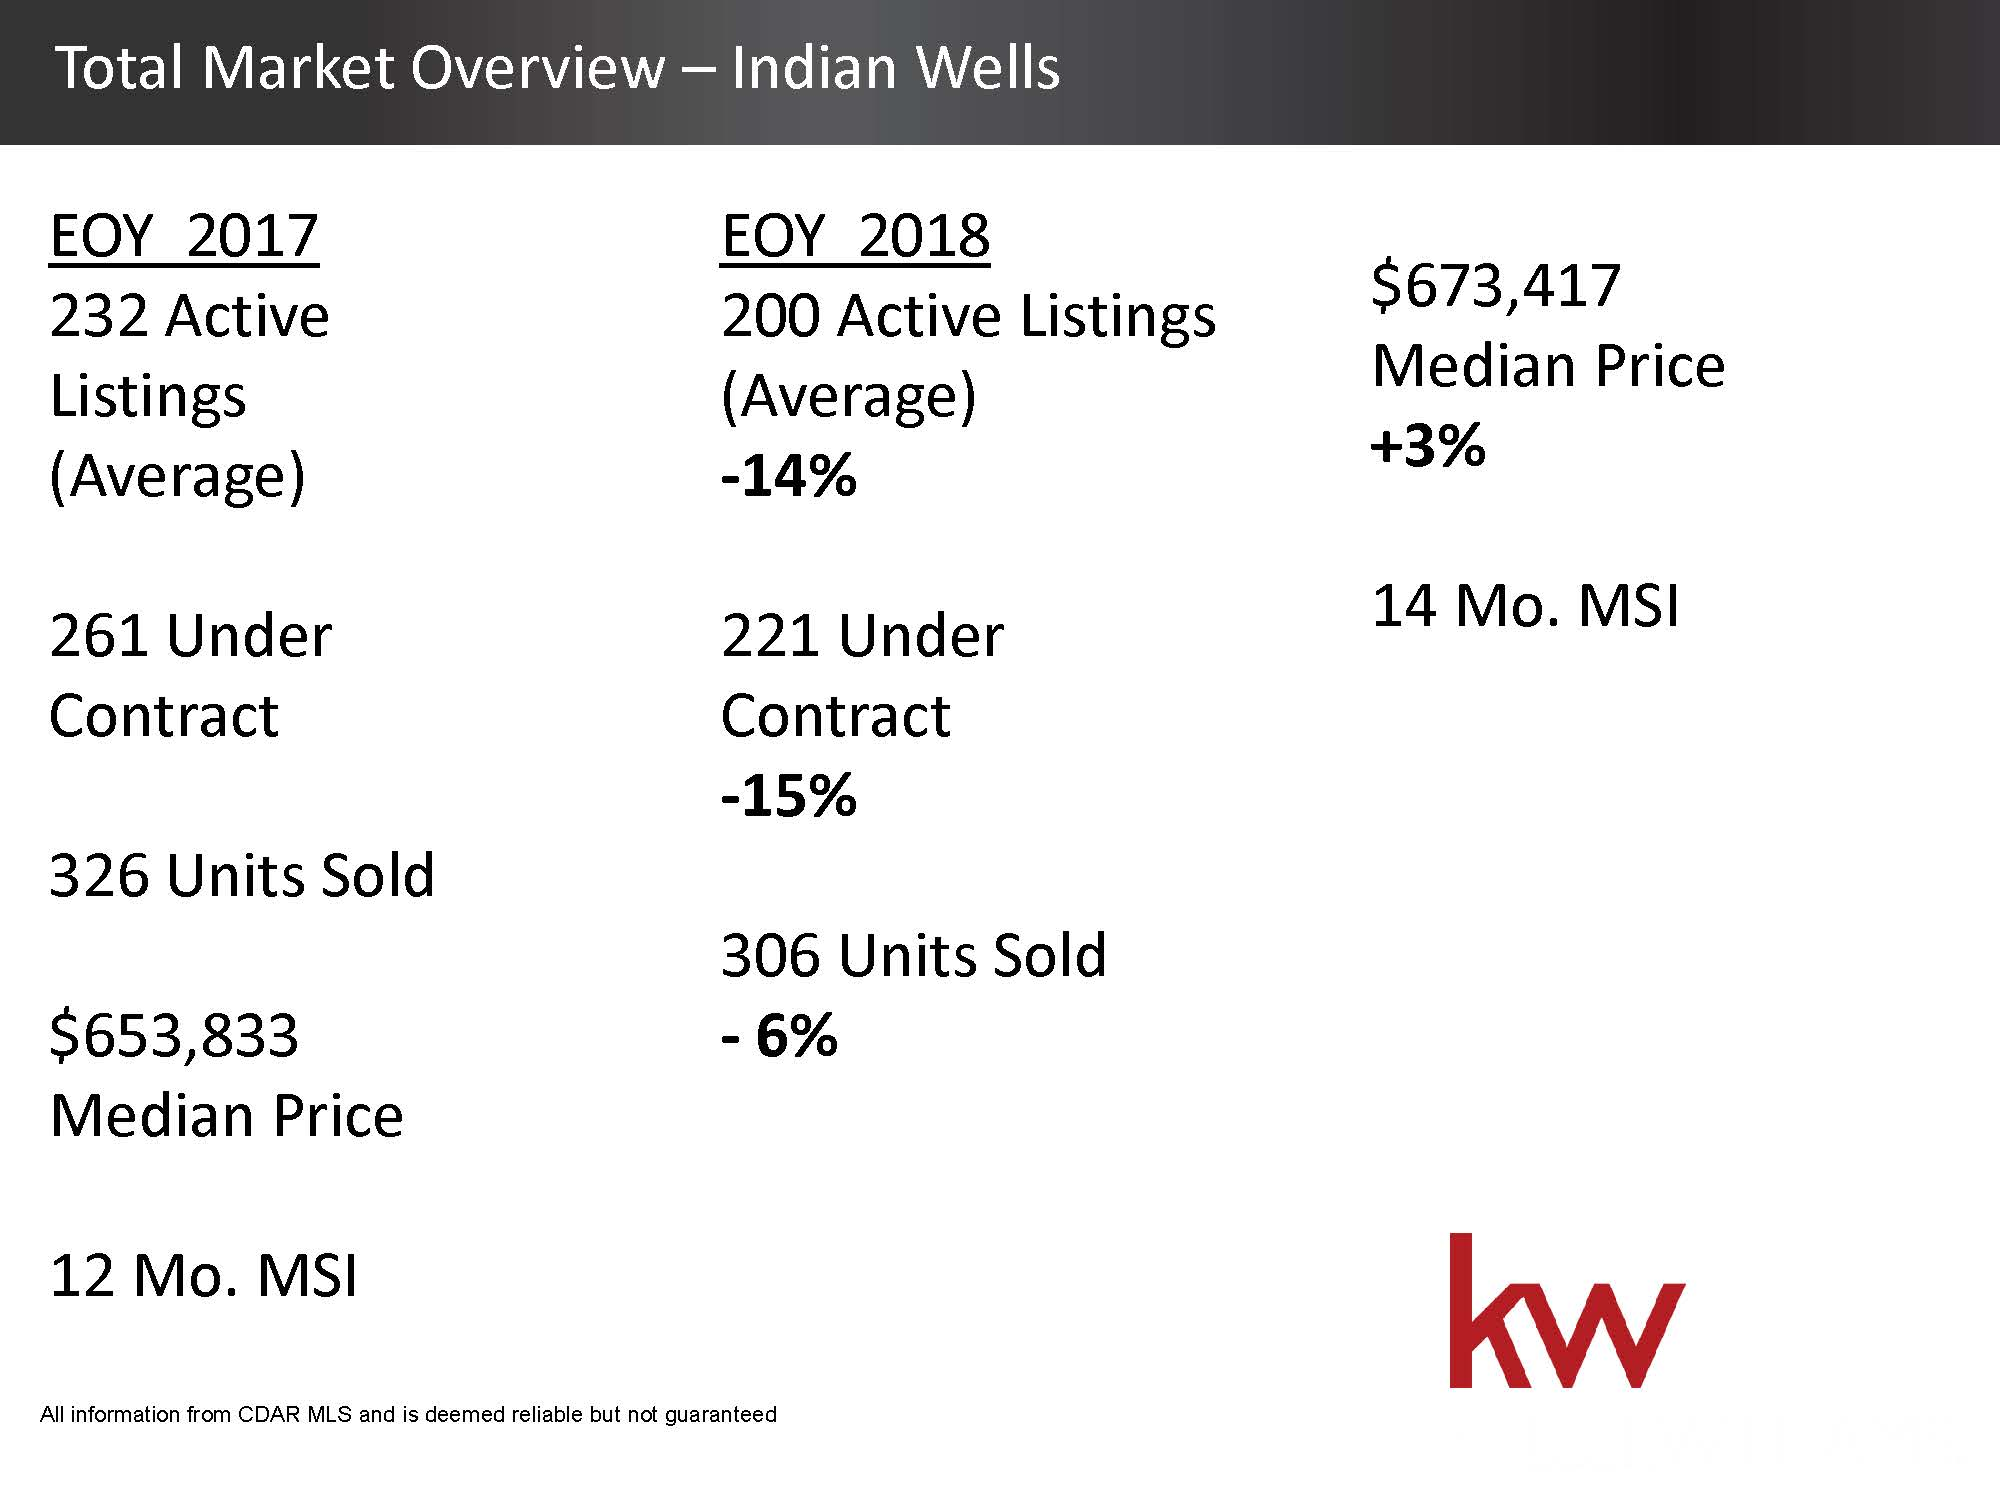 Total Housing Market 2018 Overview - Indian Wells